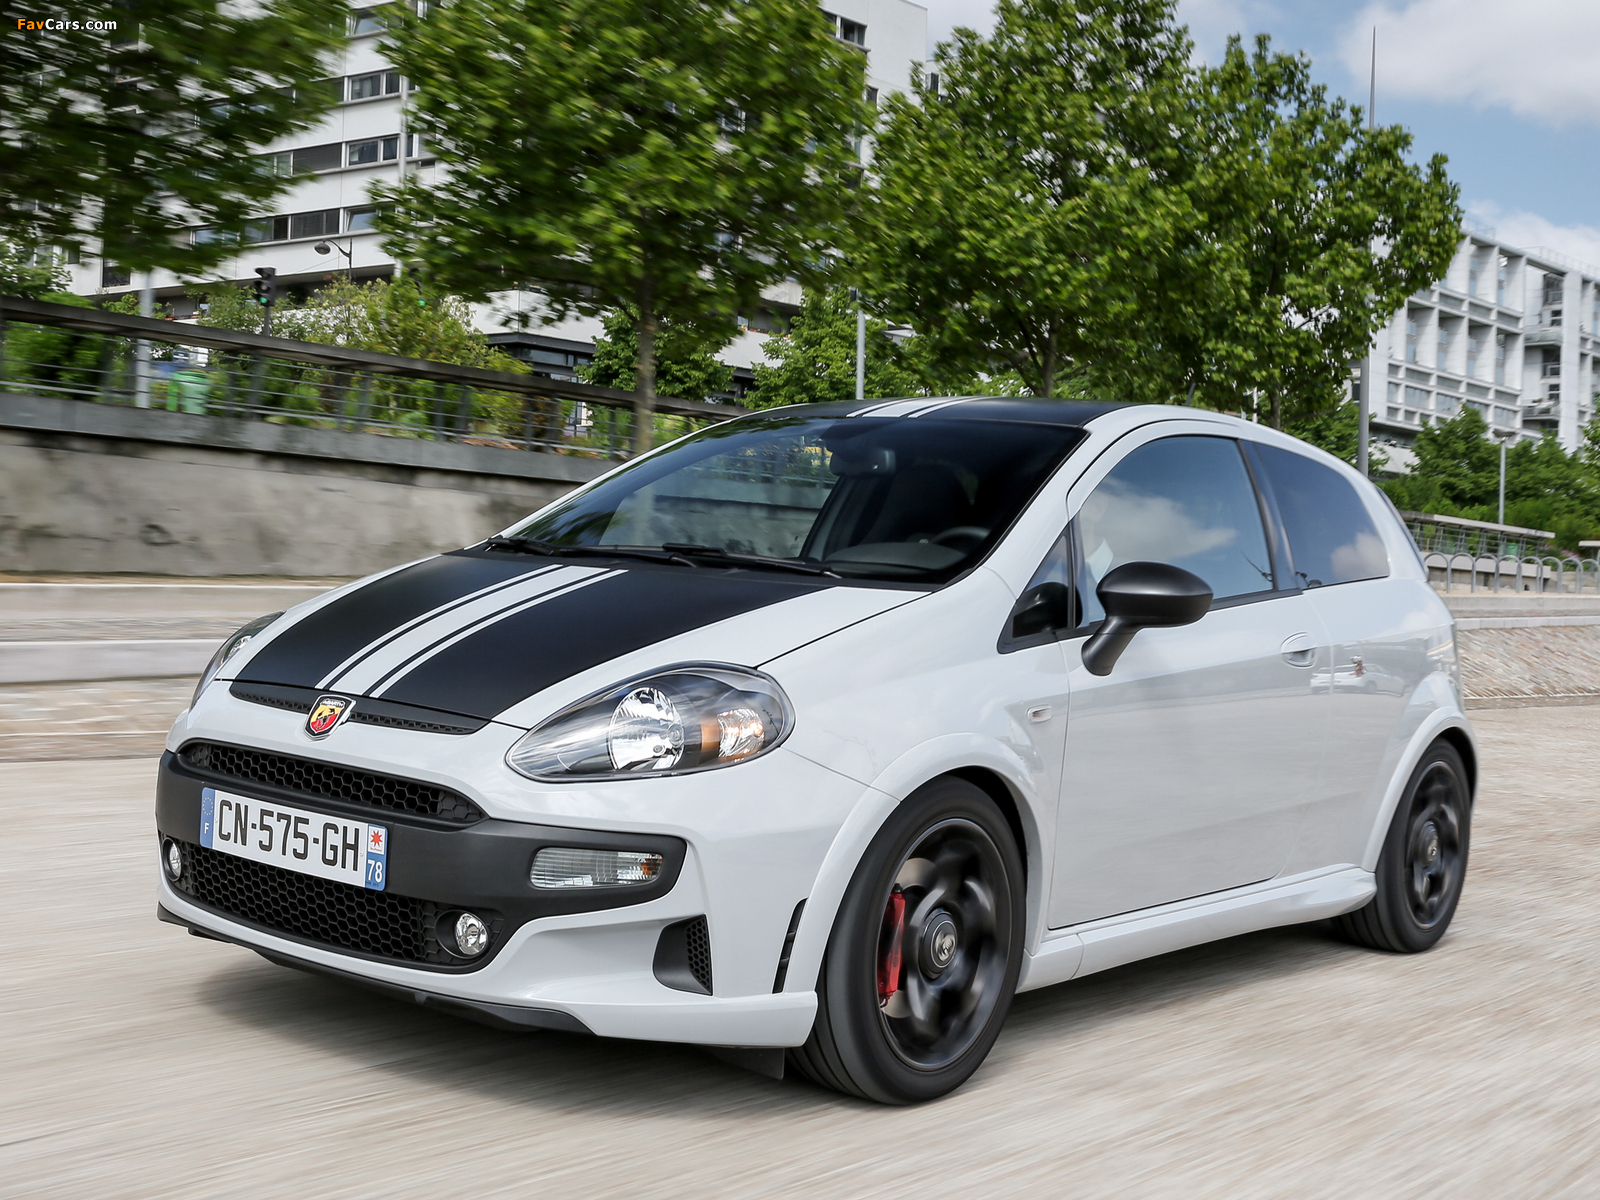 Abarth Punto SuperSport 199 (2012) wallpapers (1600 x 1200)